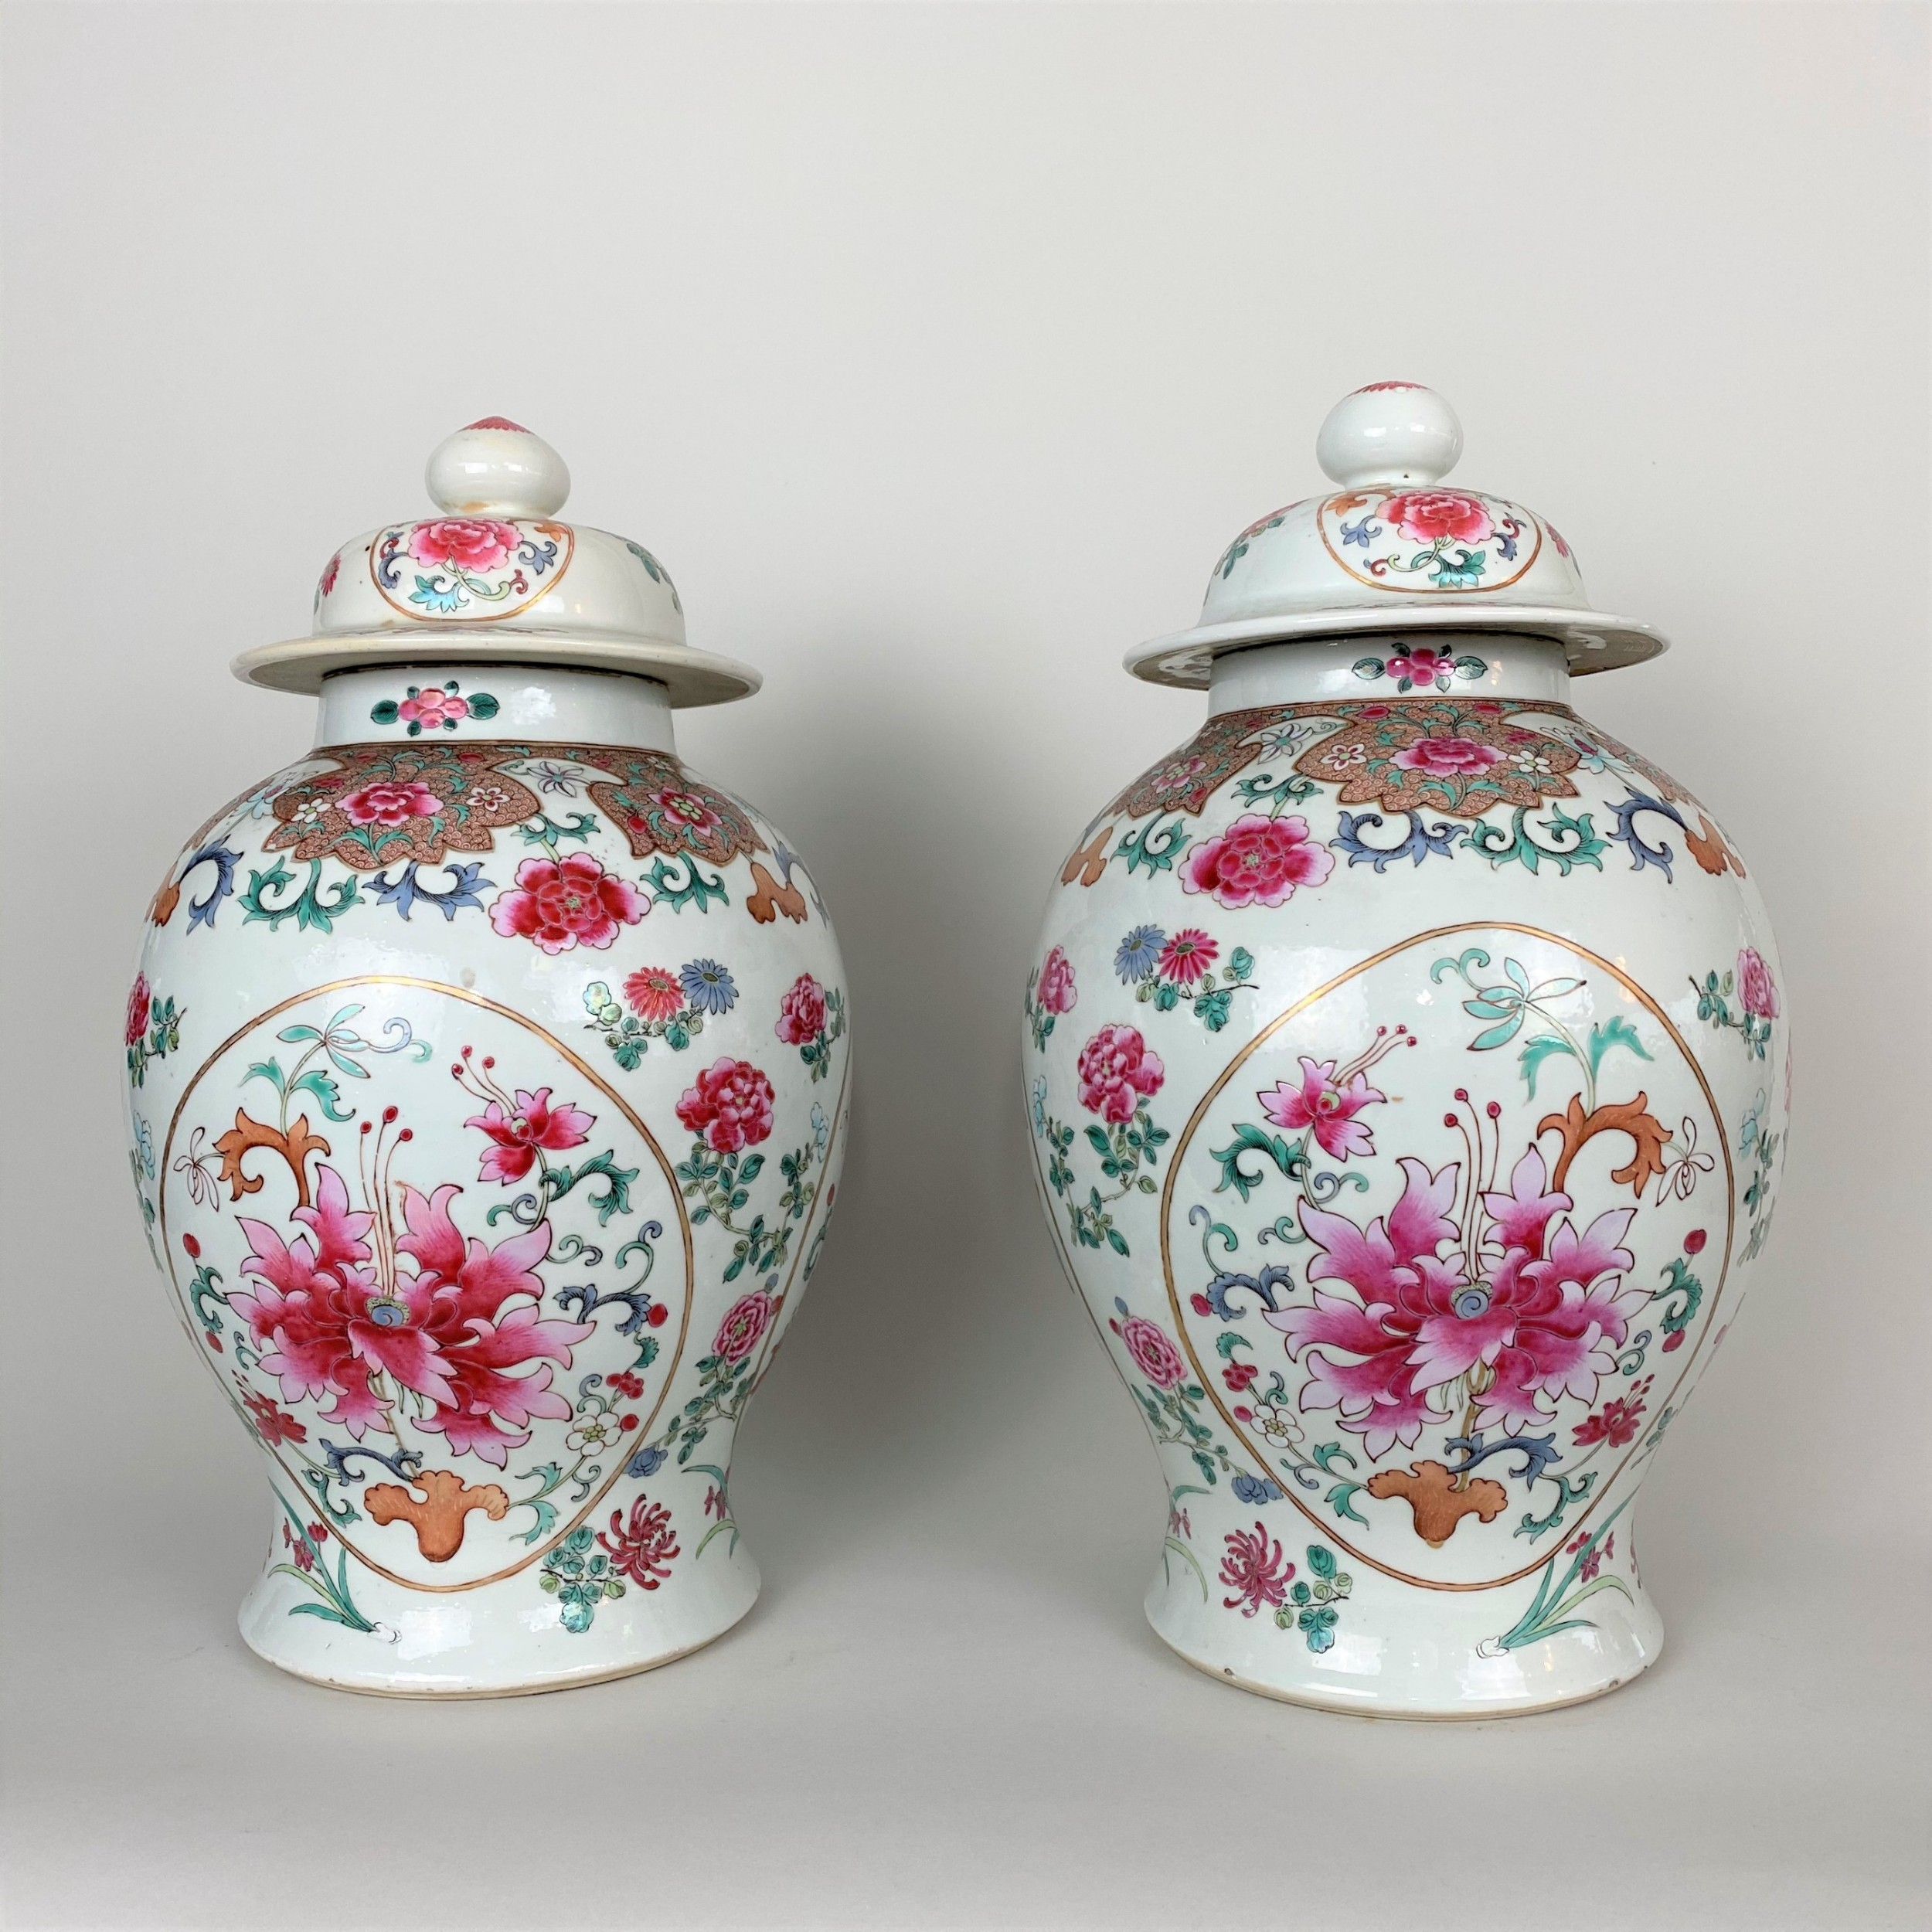 a decorative pair of large 19th century jars and covers